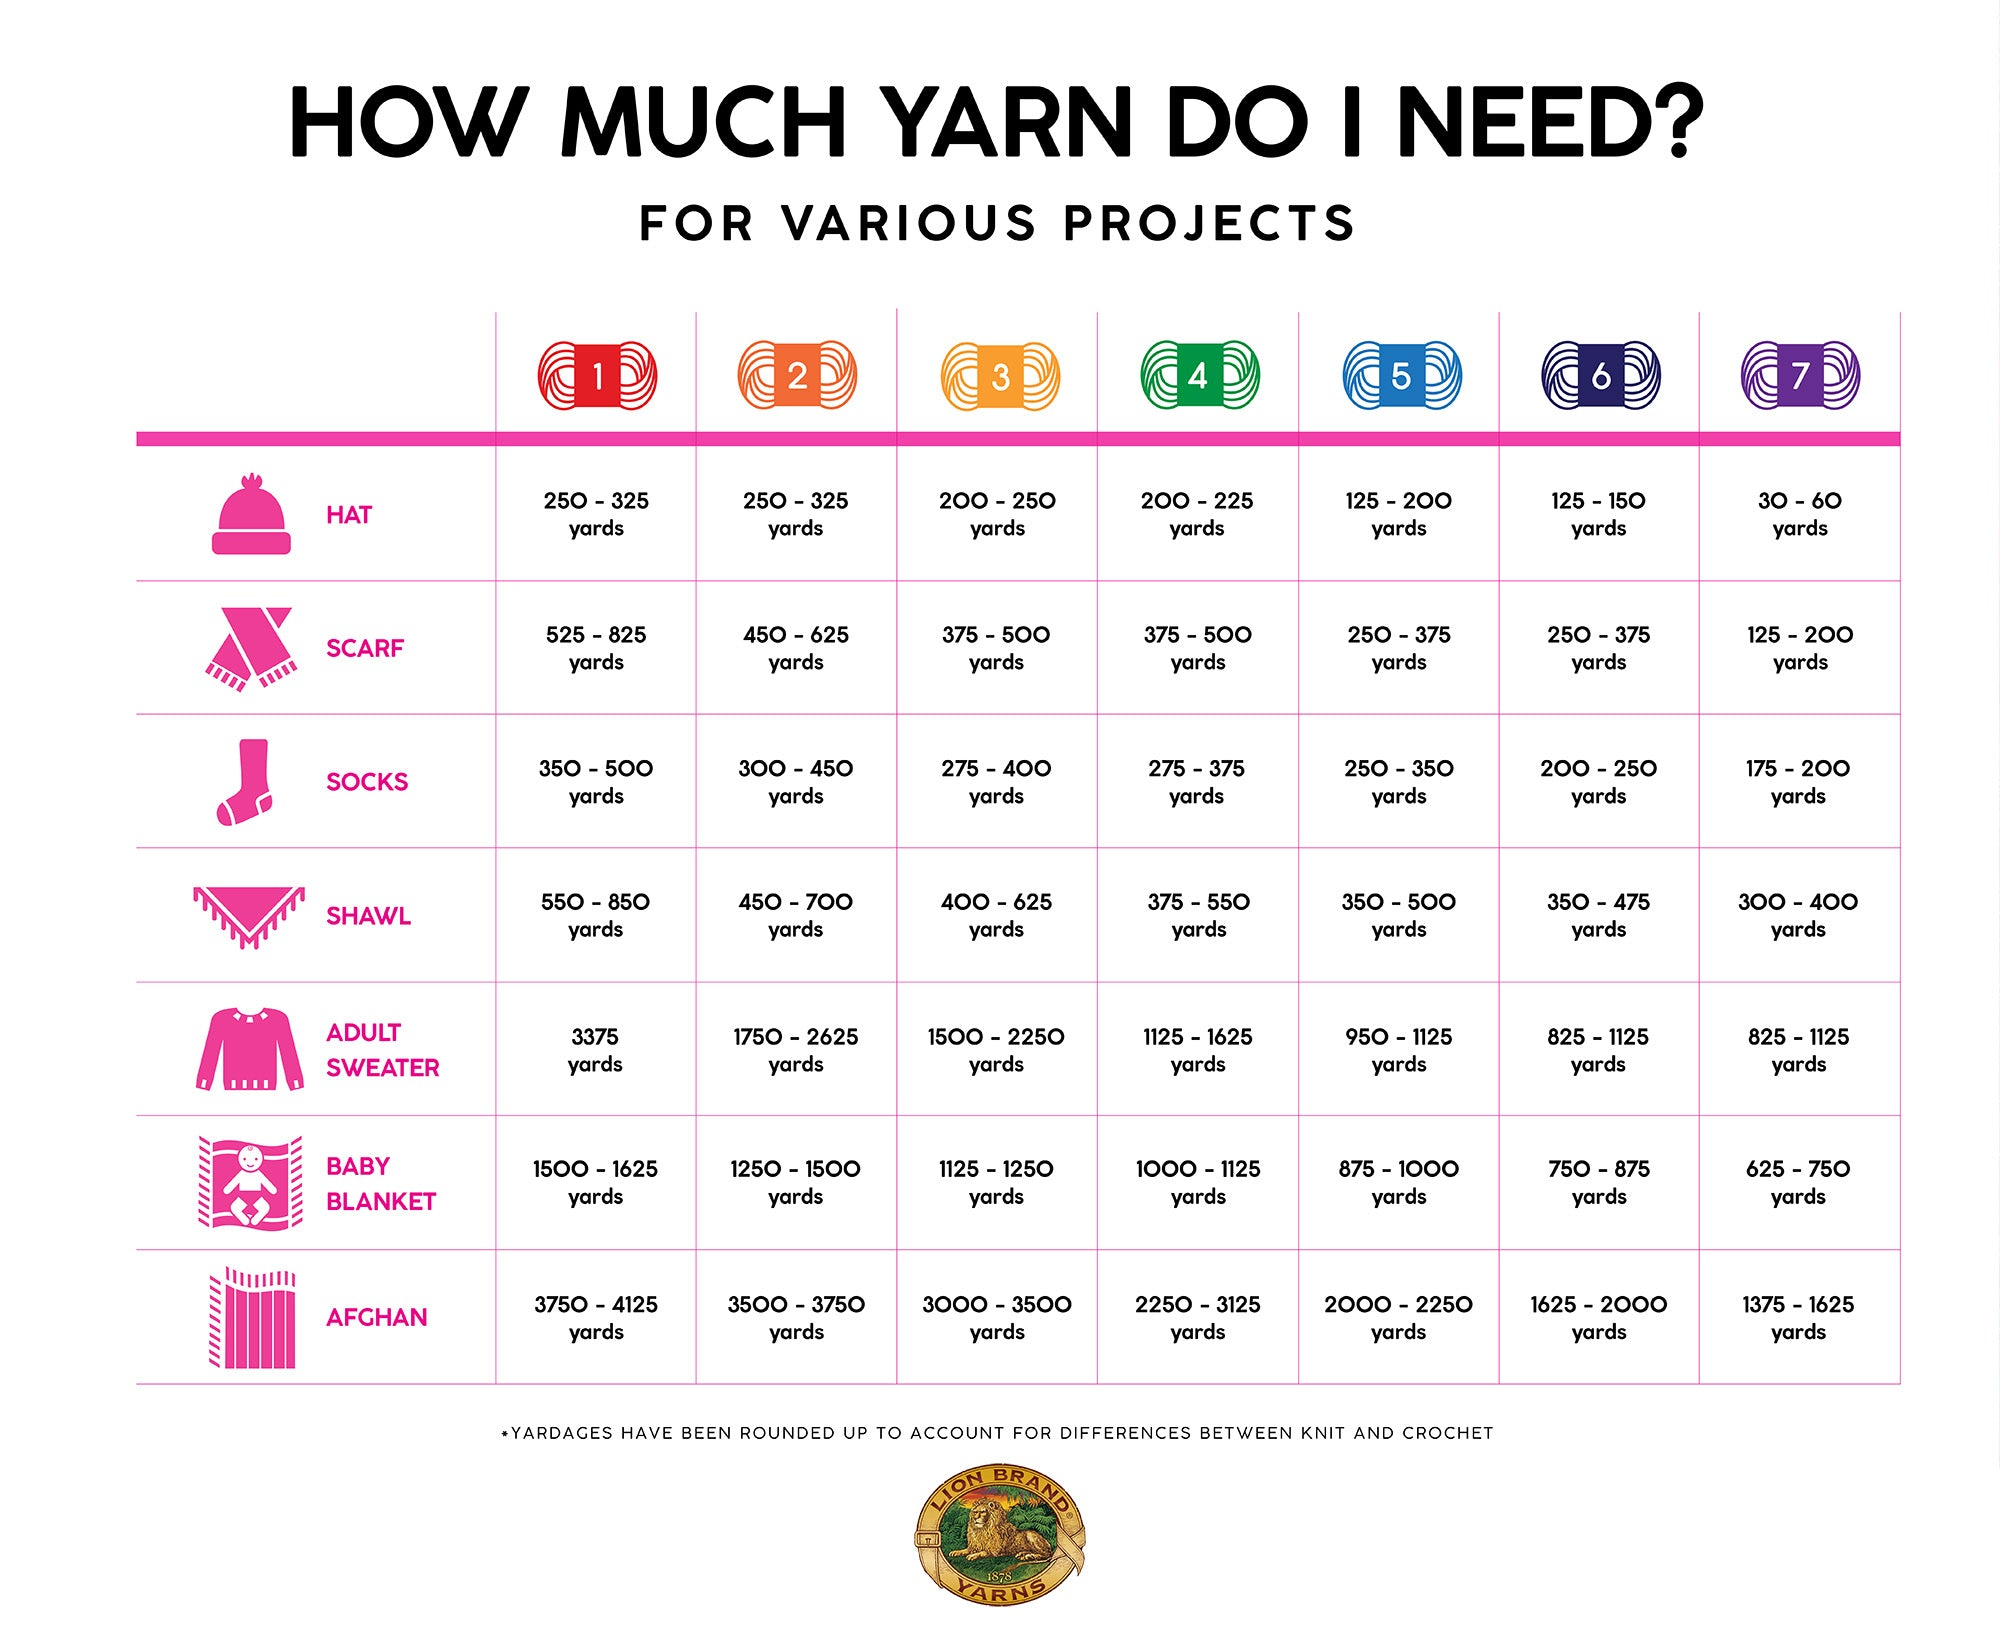 How Much Yarn Do I Need For Various Projects?